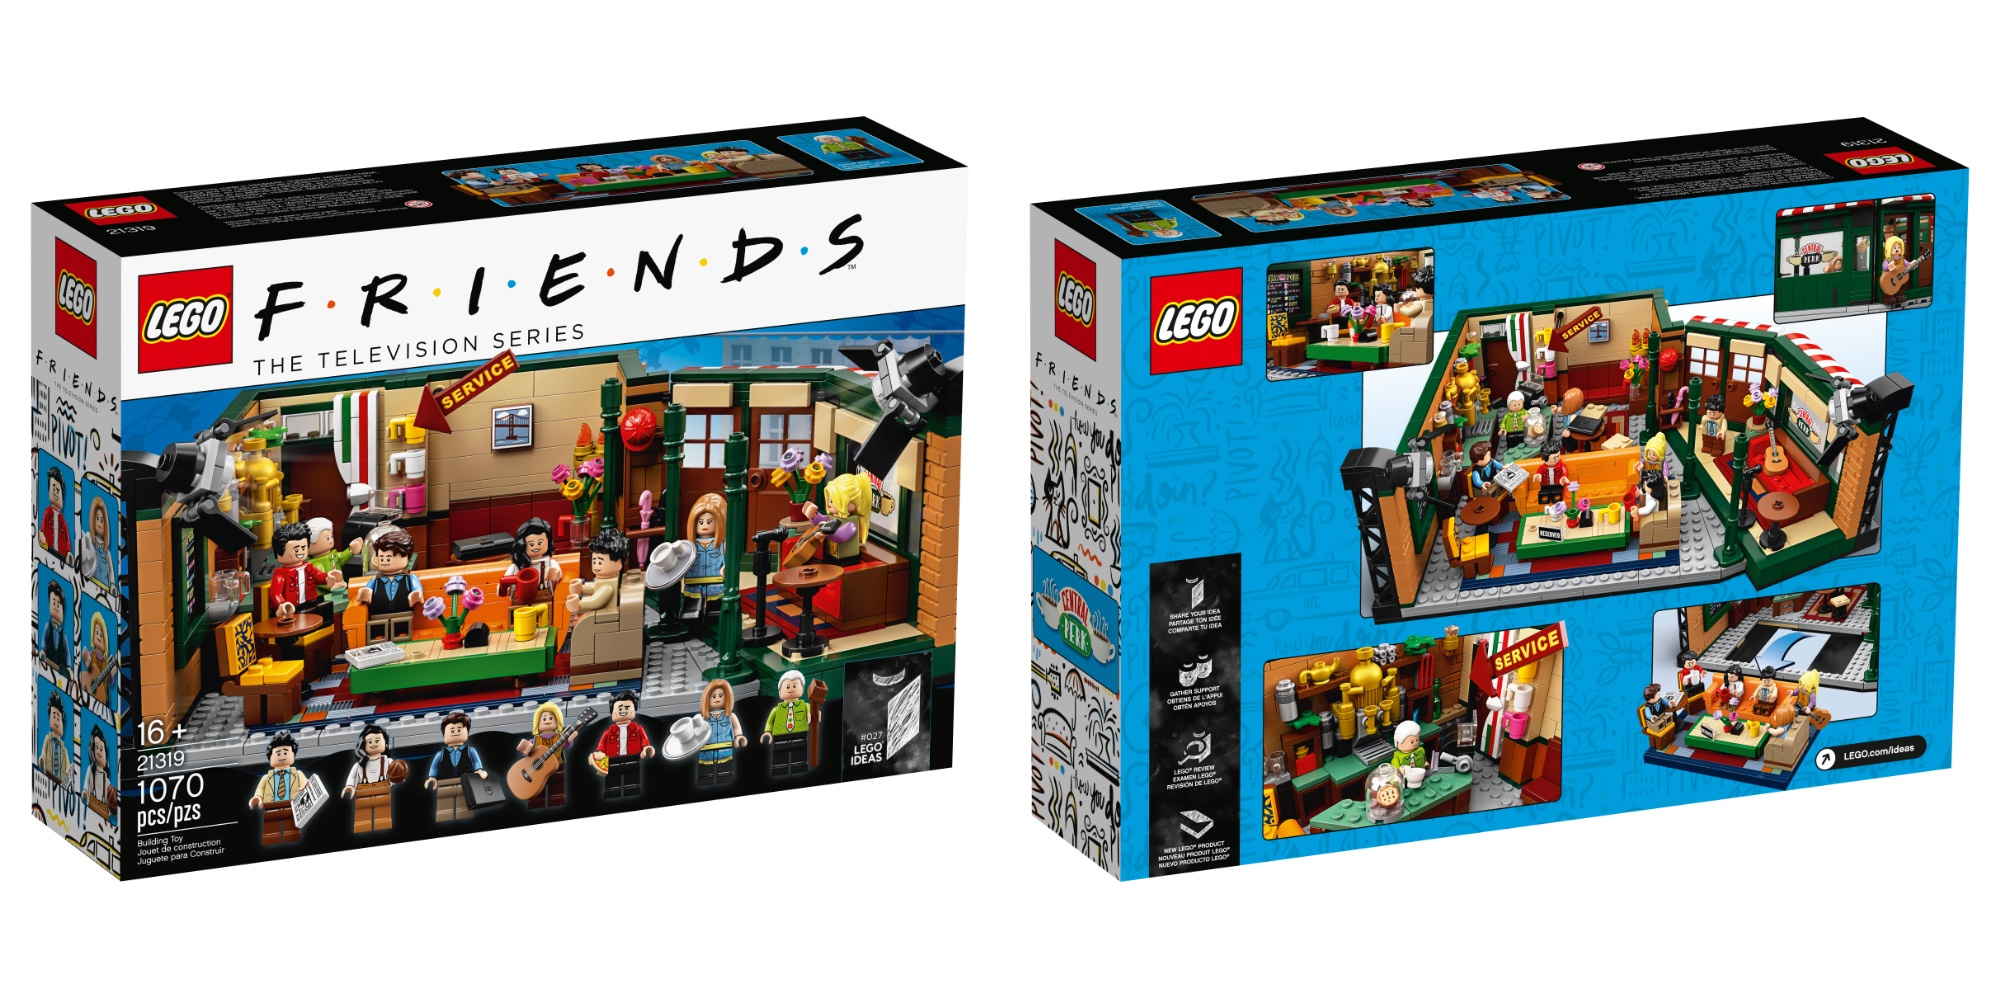 7 New 1 Figs 070 Perk 9to5toys Friends And Packs Bricks Lego Central uZOikPX